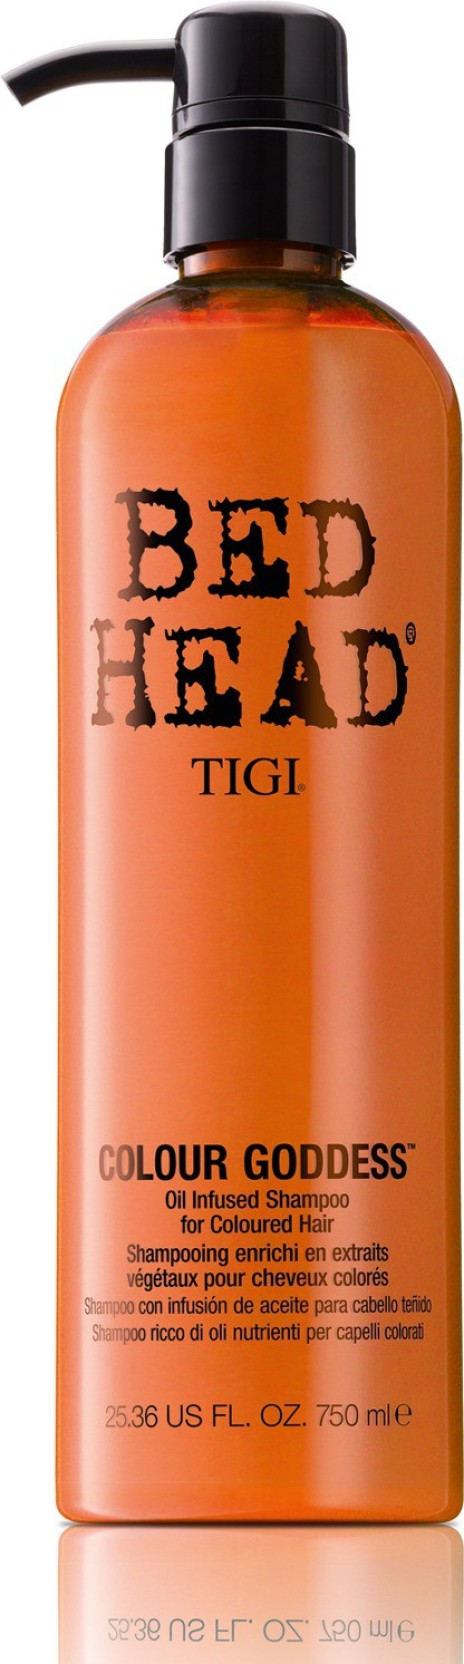 Bed Head Tigi Colour Goddess Oil Infused Shampoo